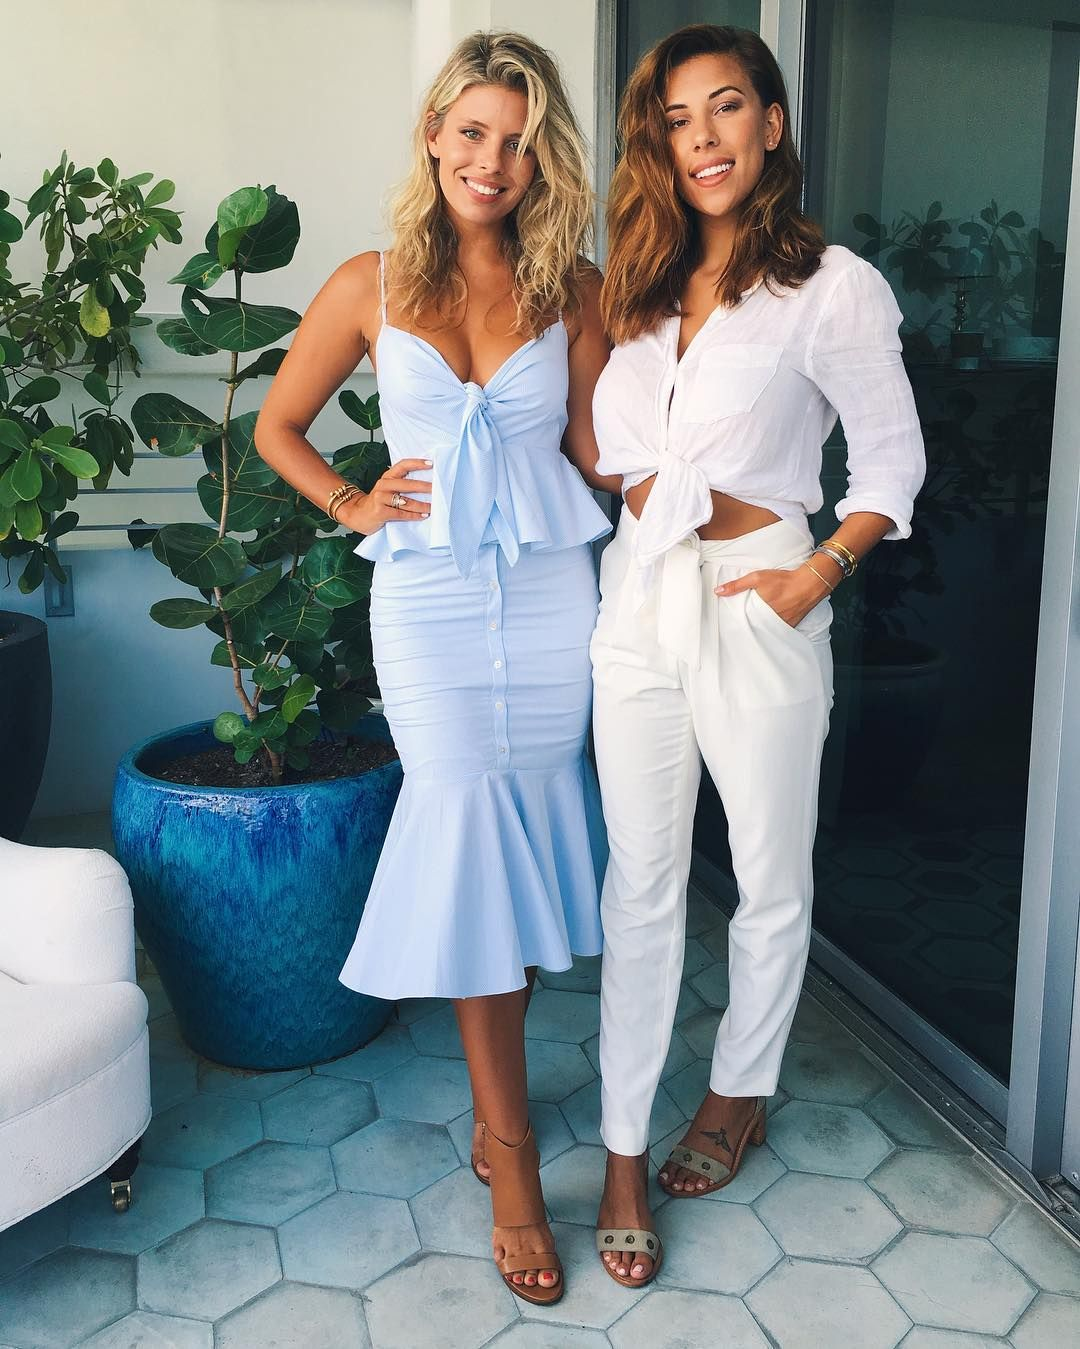 Vintage Wedding Dresses Miami: Tashoakley Another Day In Miami Means Another Brunch